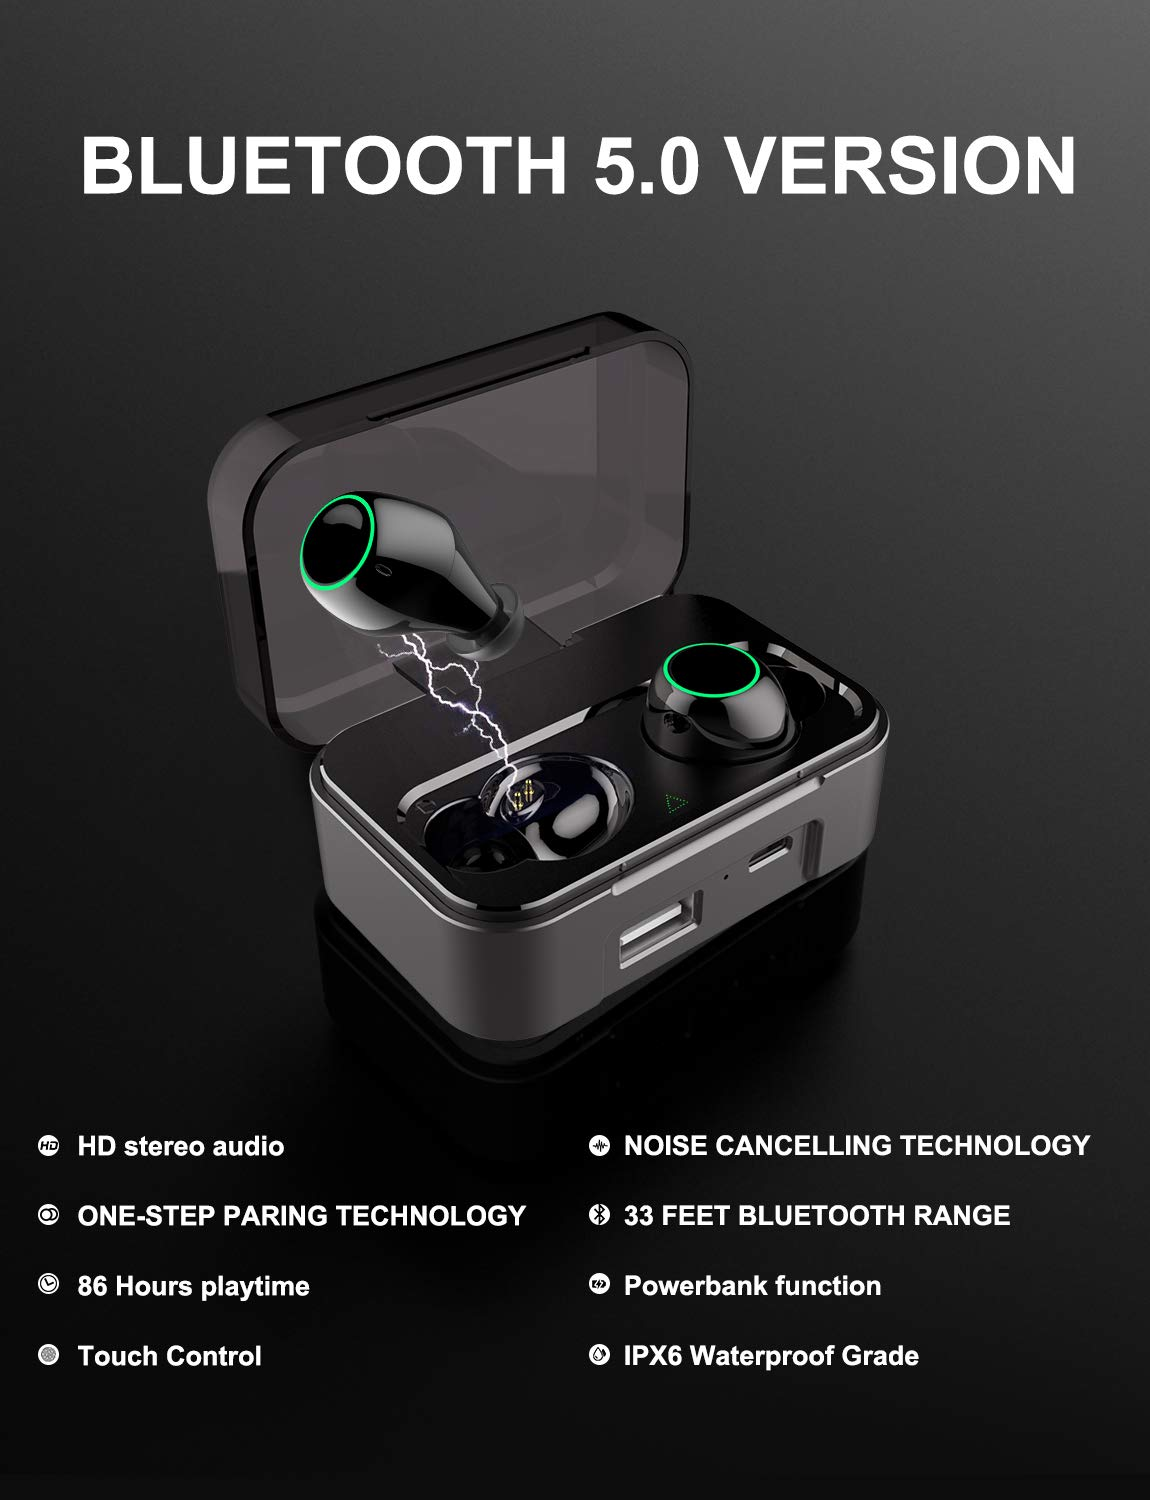 AMINY Bluetooth 5.0 Wireless Earbuds Touch Control Wireless Bluetooth Headphones with 86H Playtime Deep Bass Stereo Sound 33 ft Bluetooth Range Perfect Portable Charging Case, Built-in Mic